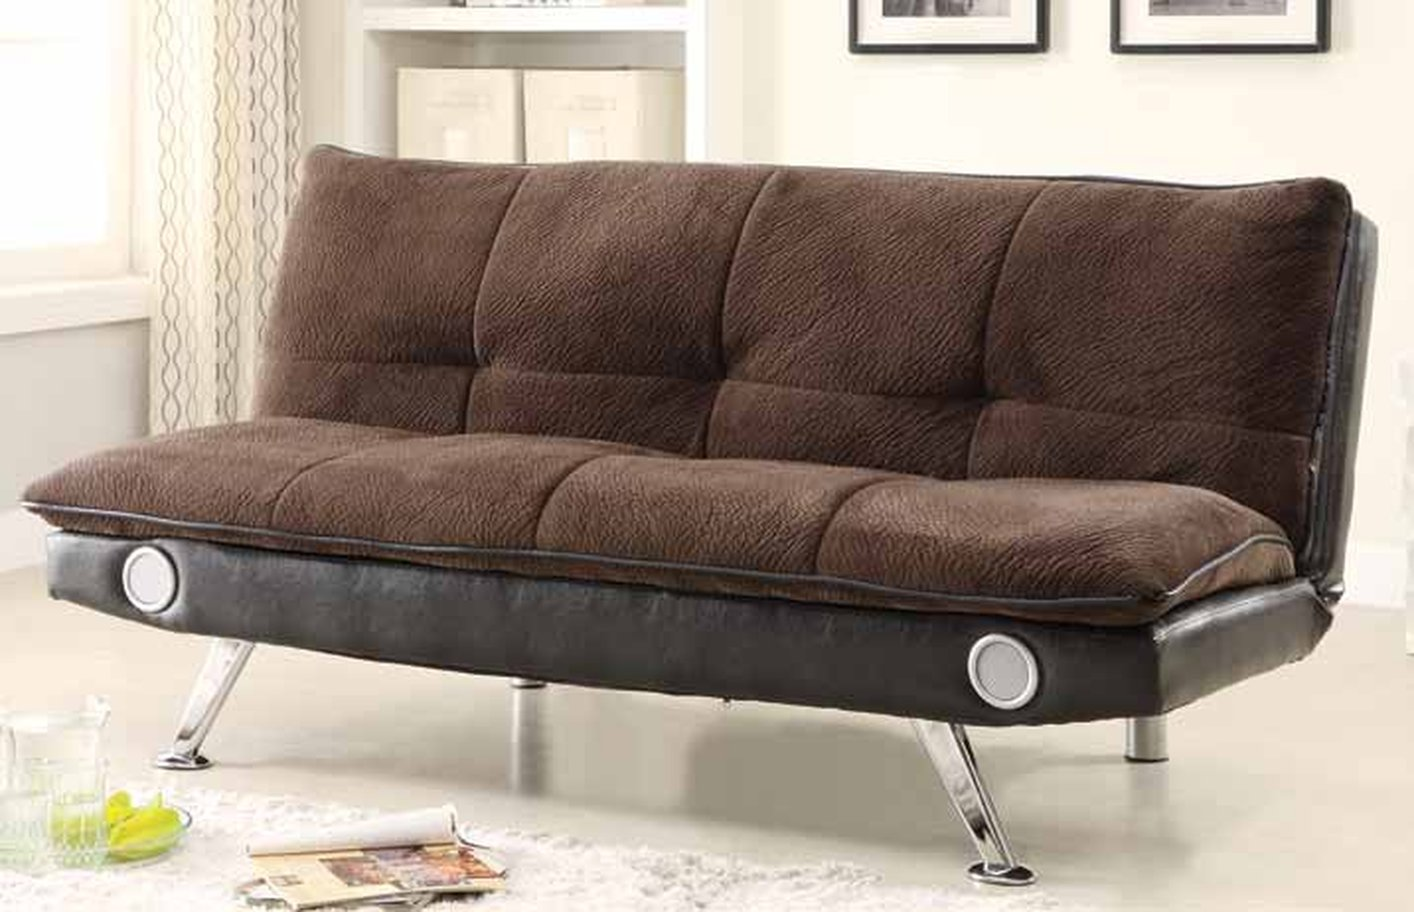 sofa sleeper chicago seth genuine leather power reclining review braxton brown bed with bluetooth connectivity